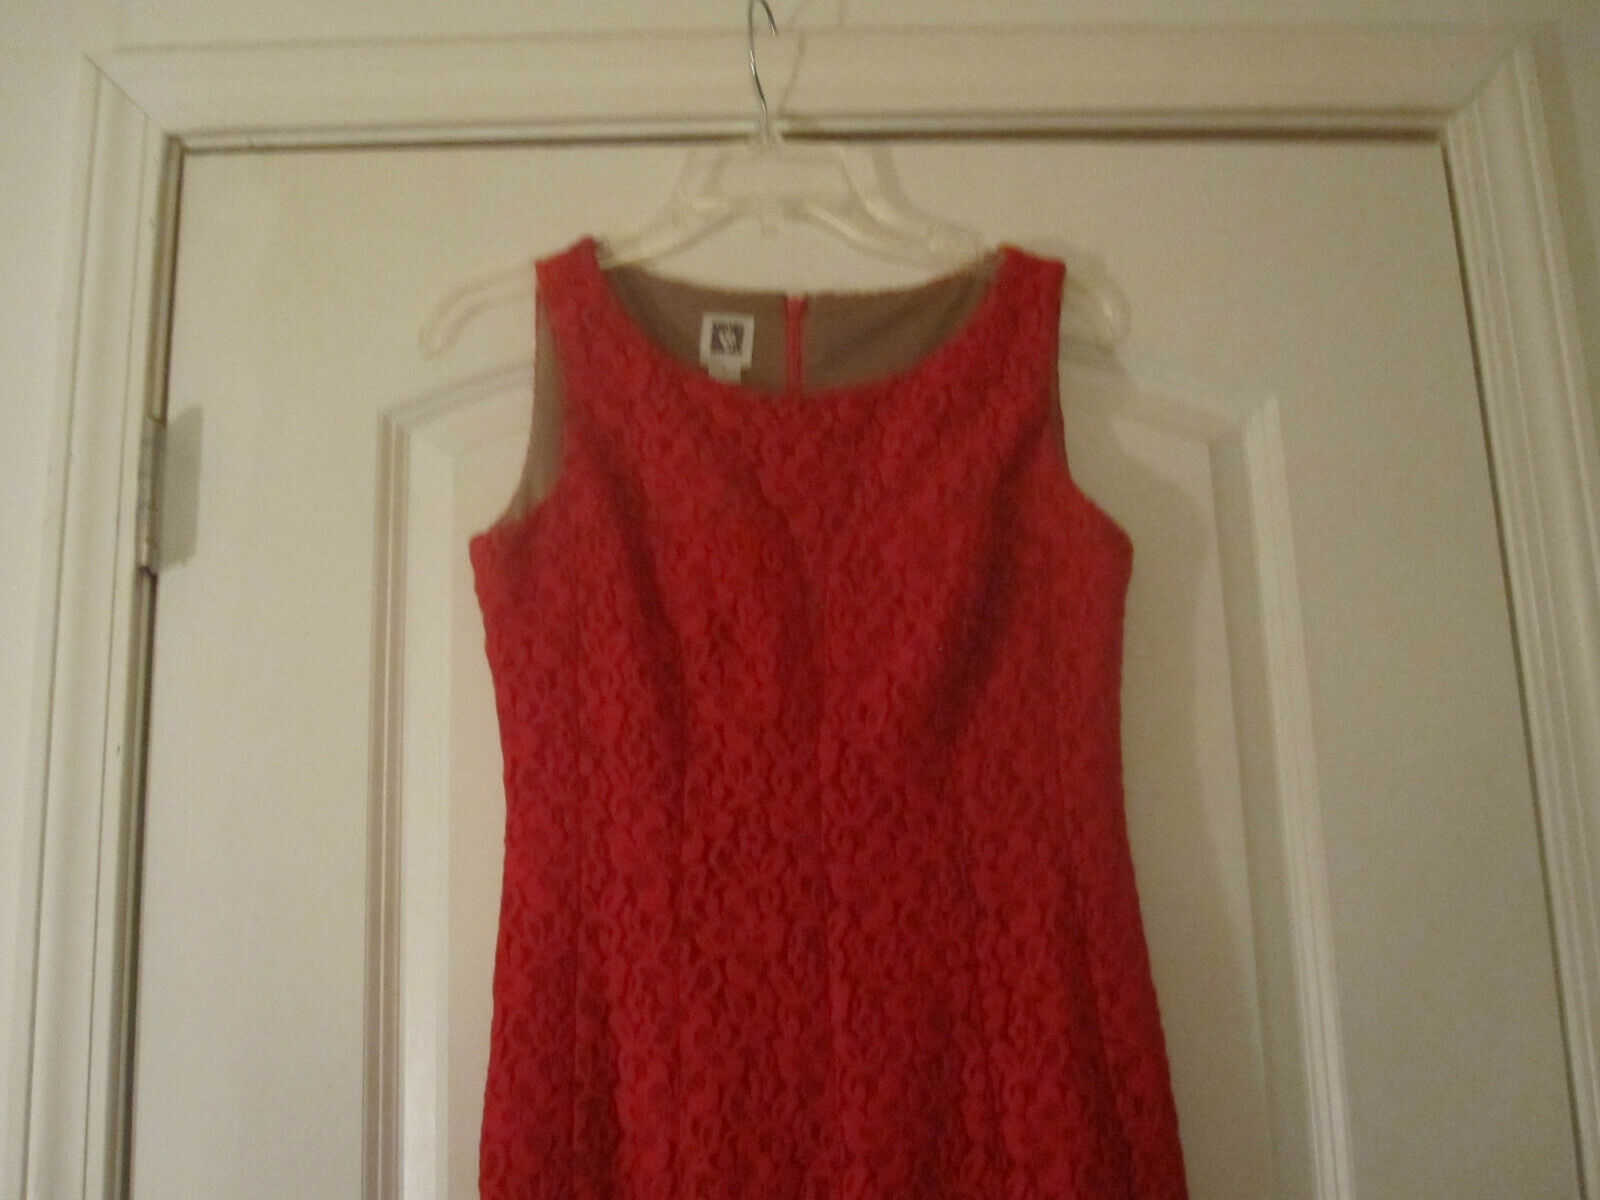 Anne Klein Womens Red Crochet Dress Lined Sleeveless Size 2 image 2